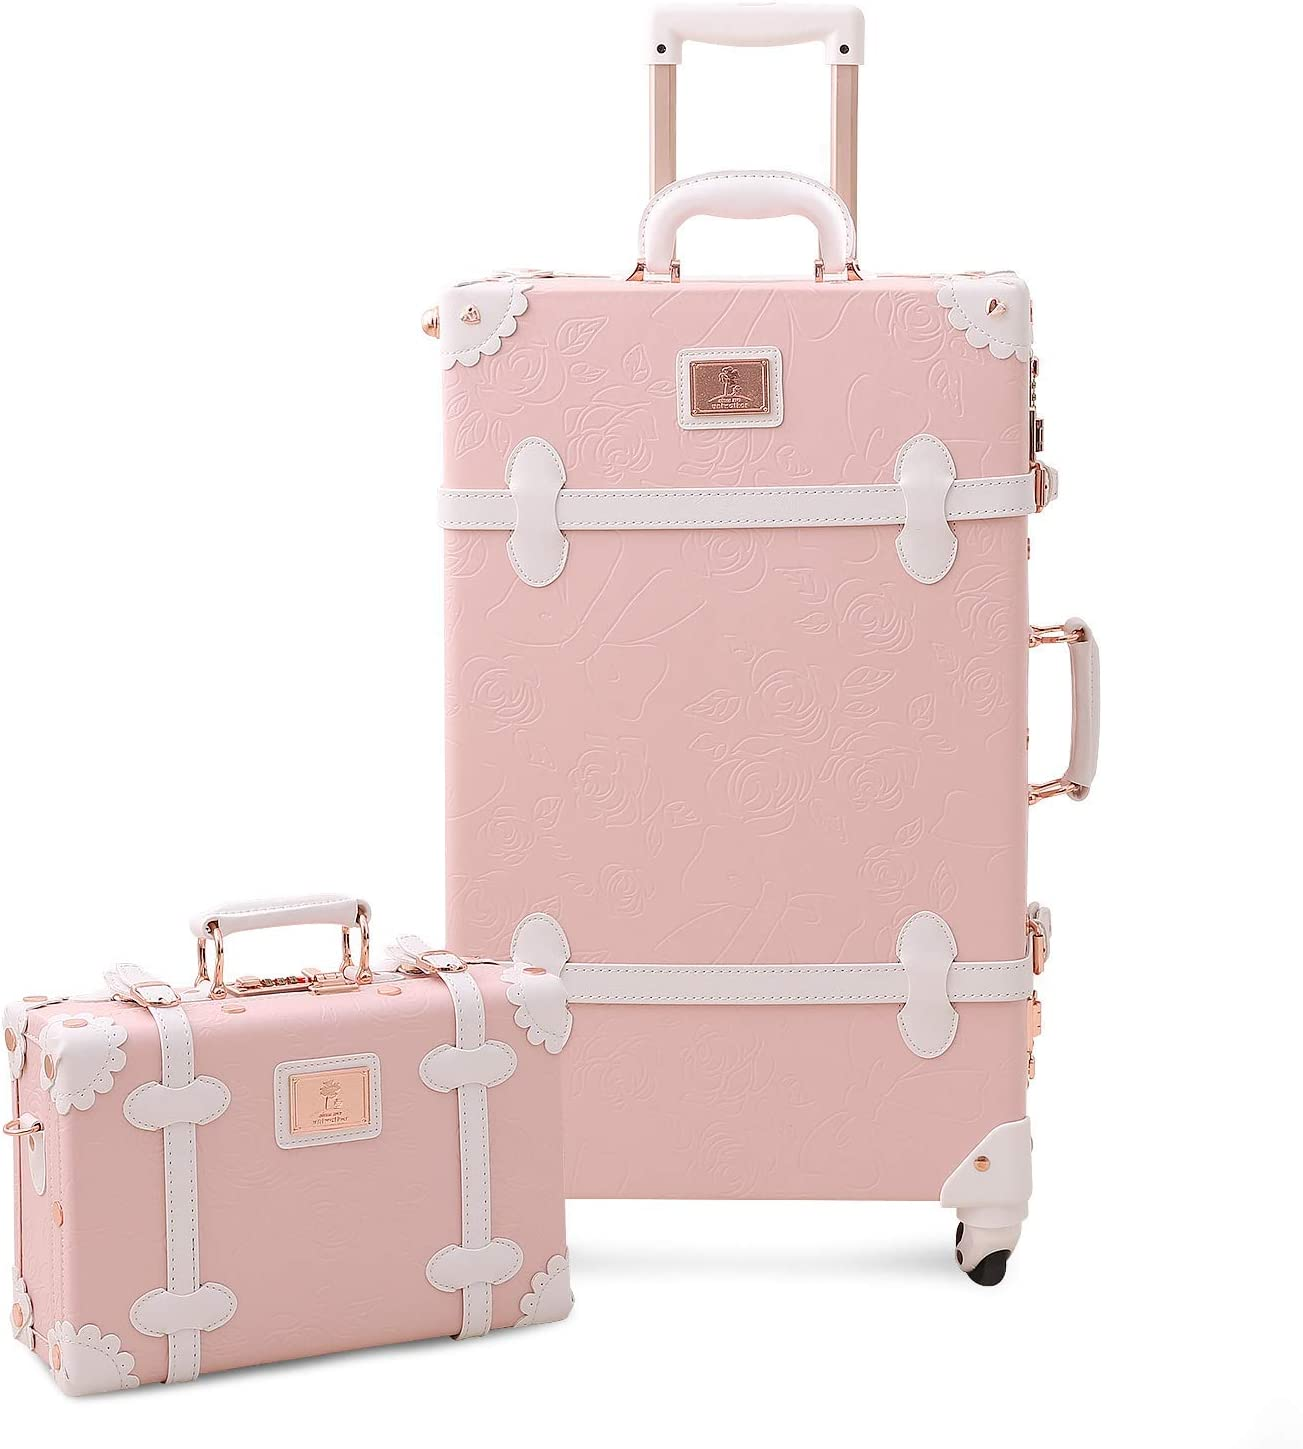 Mosslanda Vintage Suitcase Set 24 inch Retro Spinner Trunk Luggage with 12 inch Train Case for Women